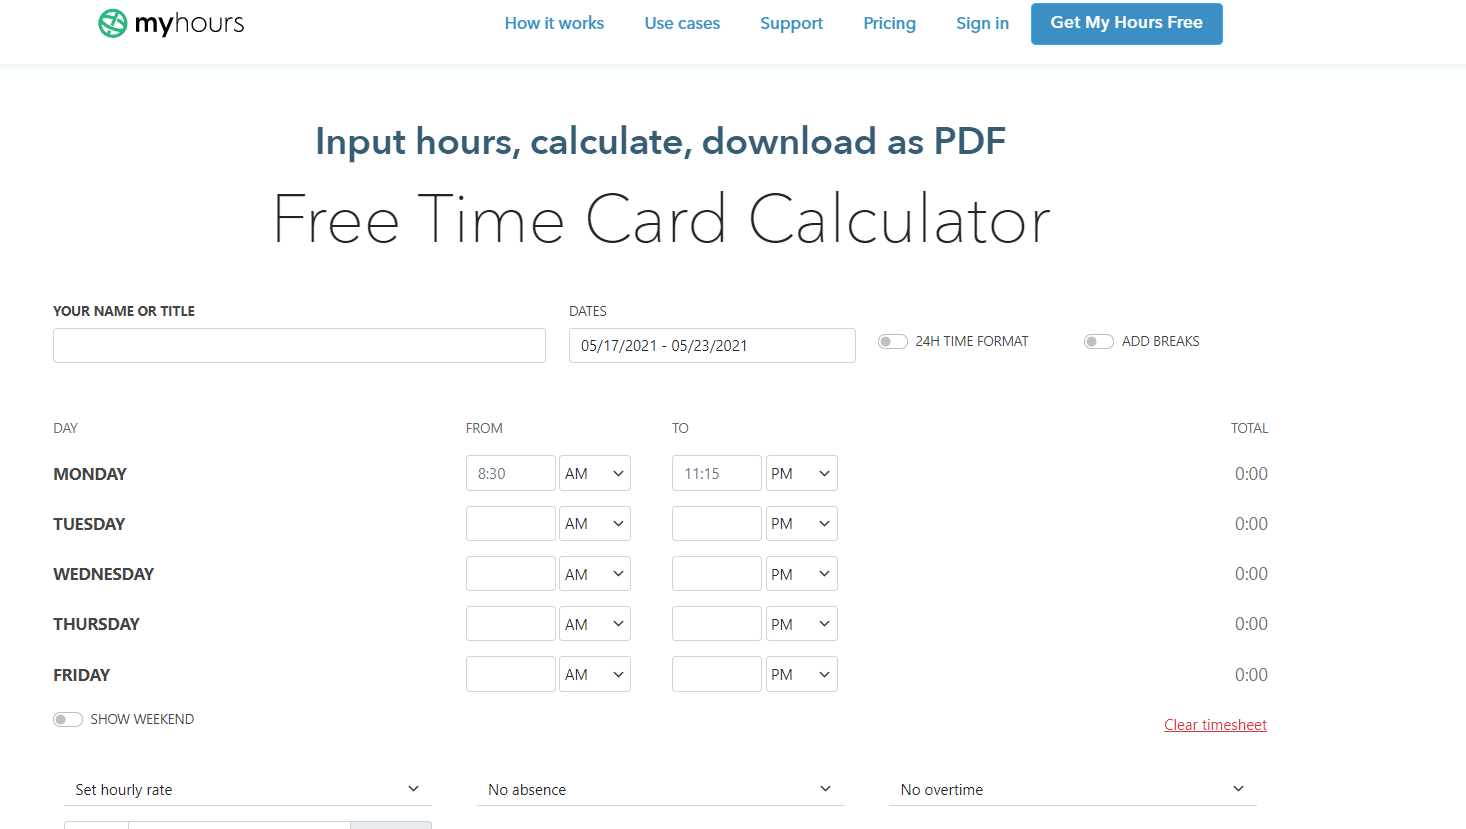 myhours online timesheets for managing time